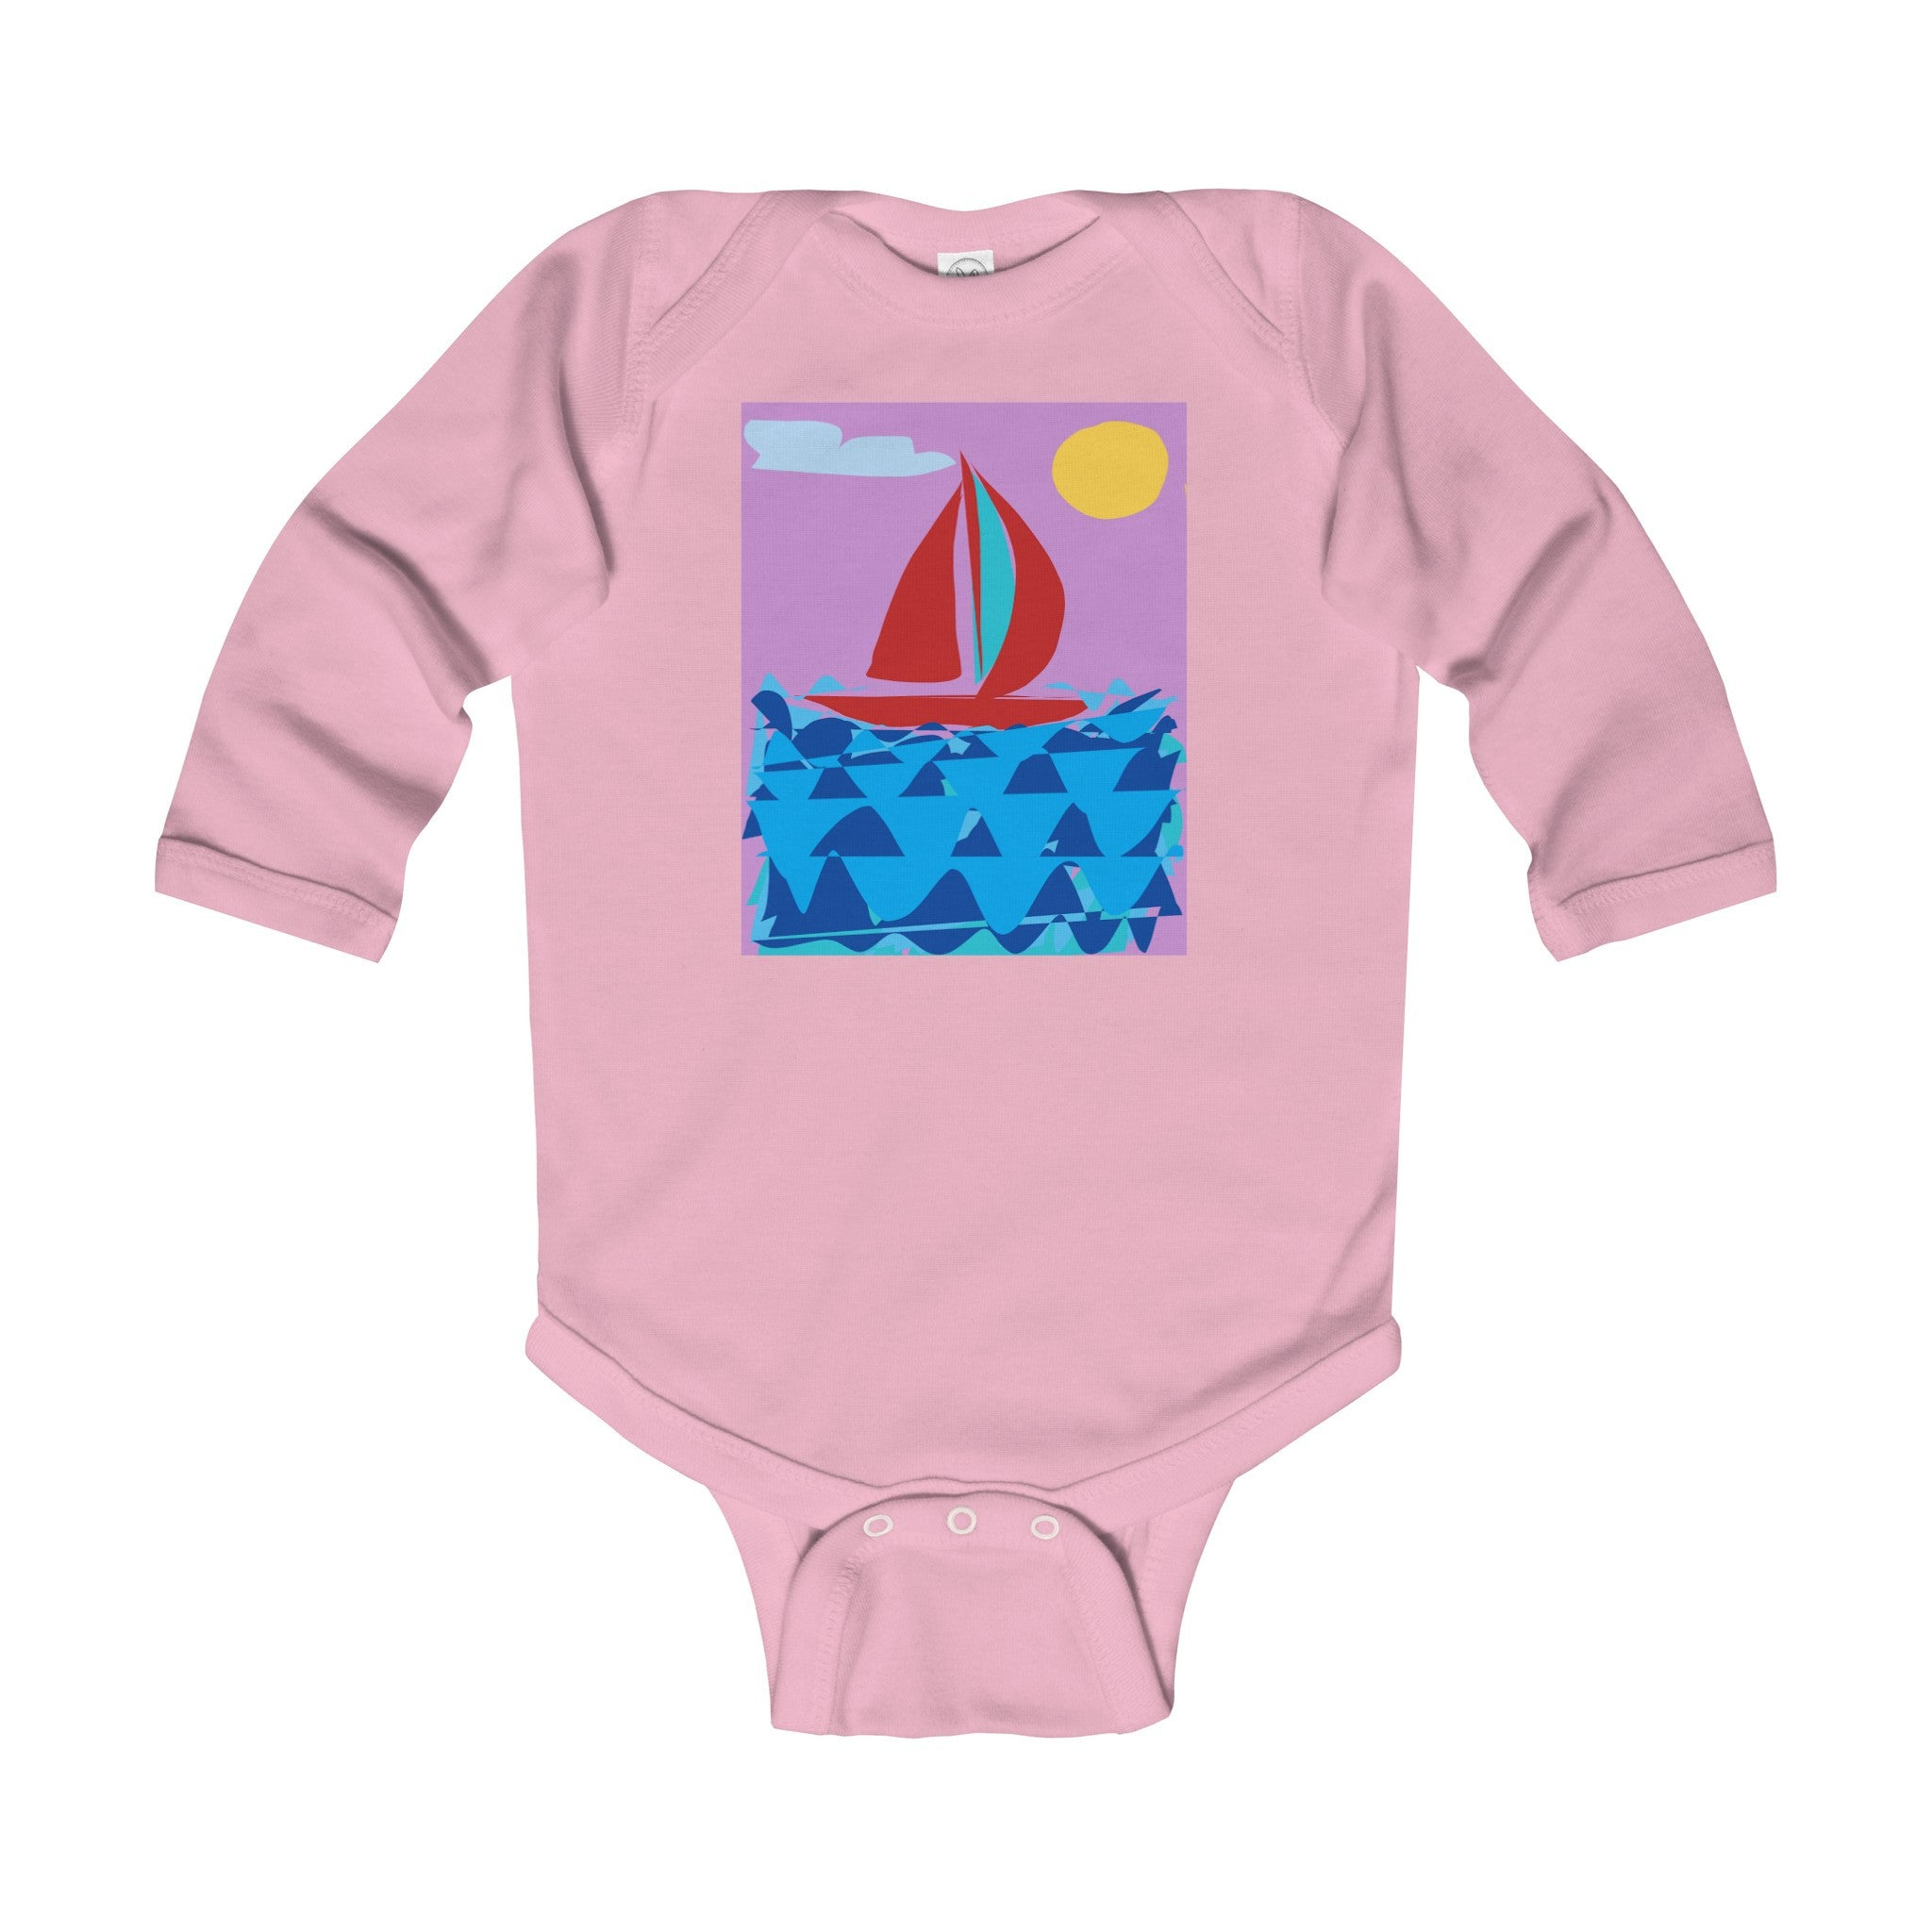 Infant Long Sleeve Bodysuit-Kids clothes-Printify-6-12M-Pink-Love My Husband Shop